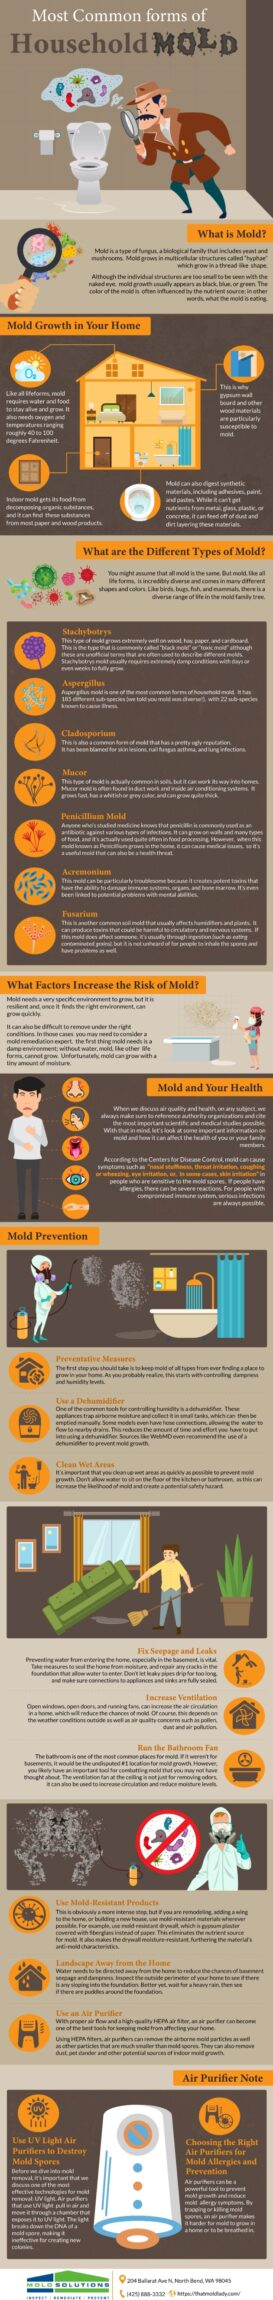 Common Types Of Household Mold